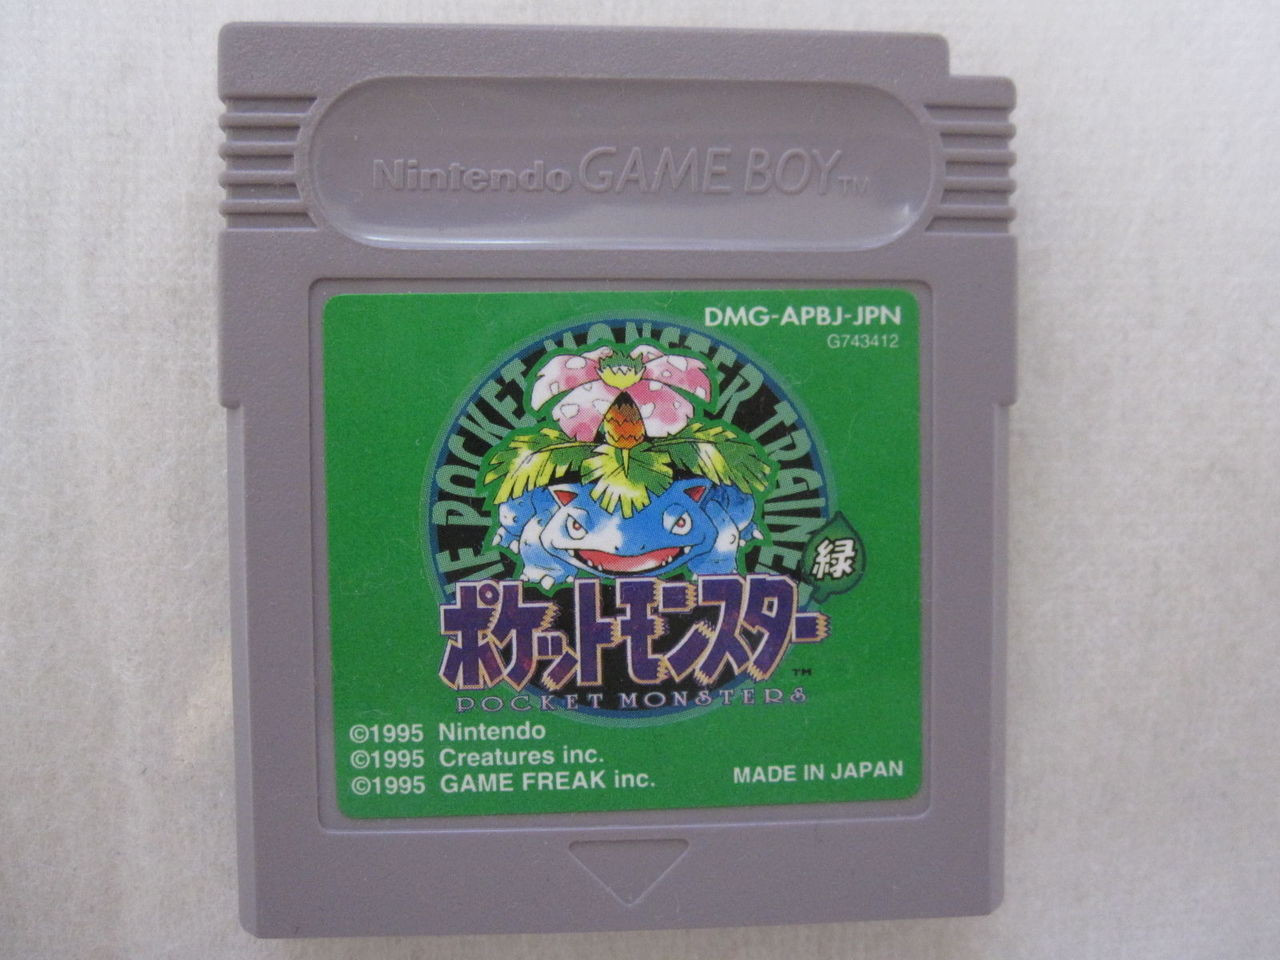 New Save Battery Extended  Nintendo Game Boy Pokemon Green Pocket Monsters  Midori  Japanese Version  Airmail  ( 7-14 Days to USA  )